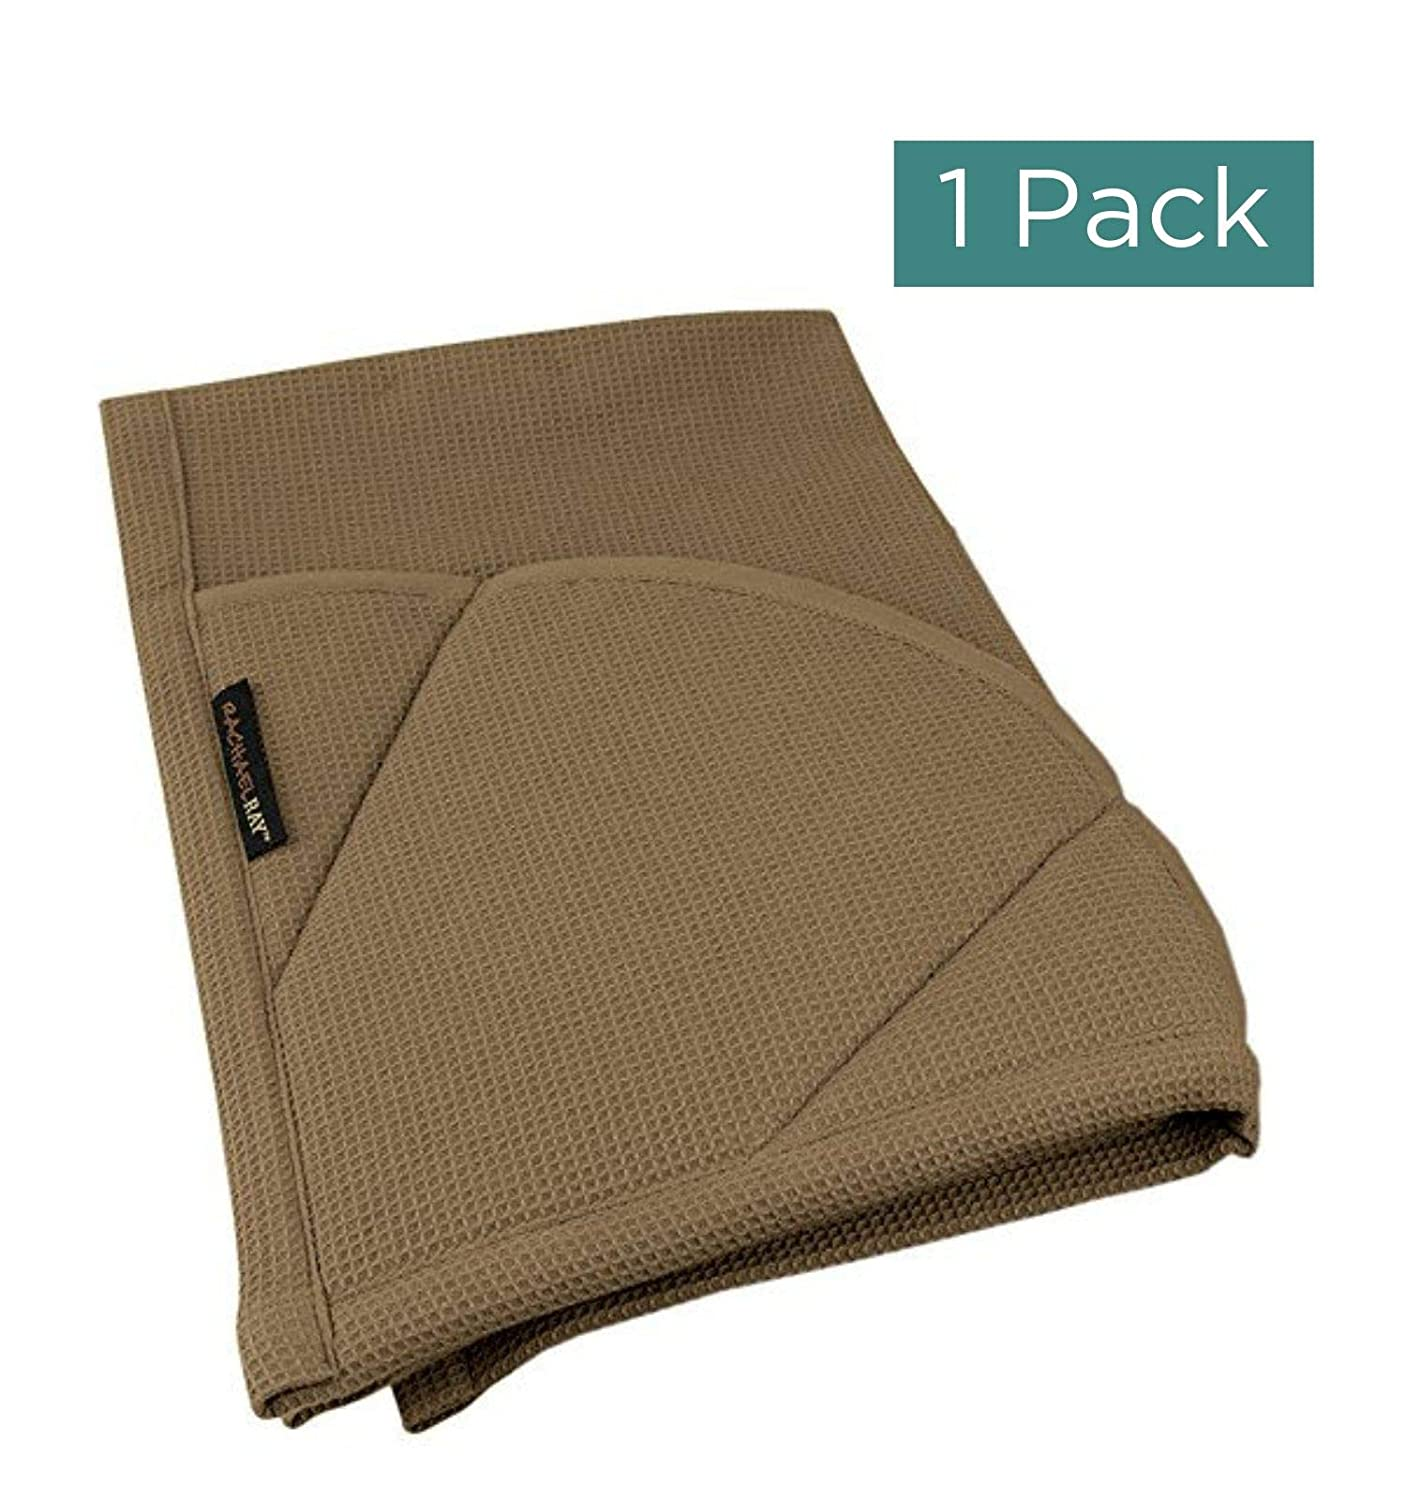 Rachael Ray Kitchen Towel, Oven Glove Moppine - 2-in-1 Ultra Absorbent Kitchen Towels with Heat Resistant Padded Pockets Like Pot Holders and Oven Mitts to Handle Hot Cookware - Brown, 1 Pack